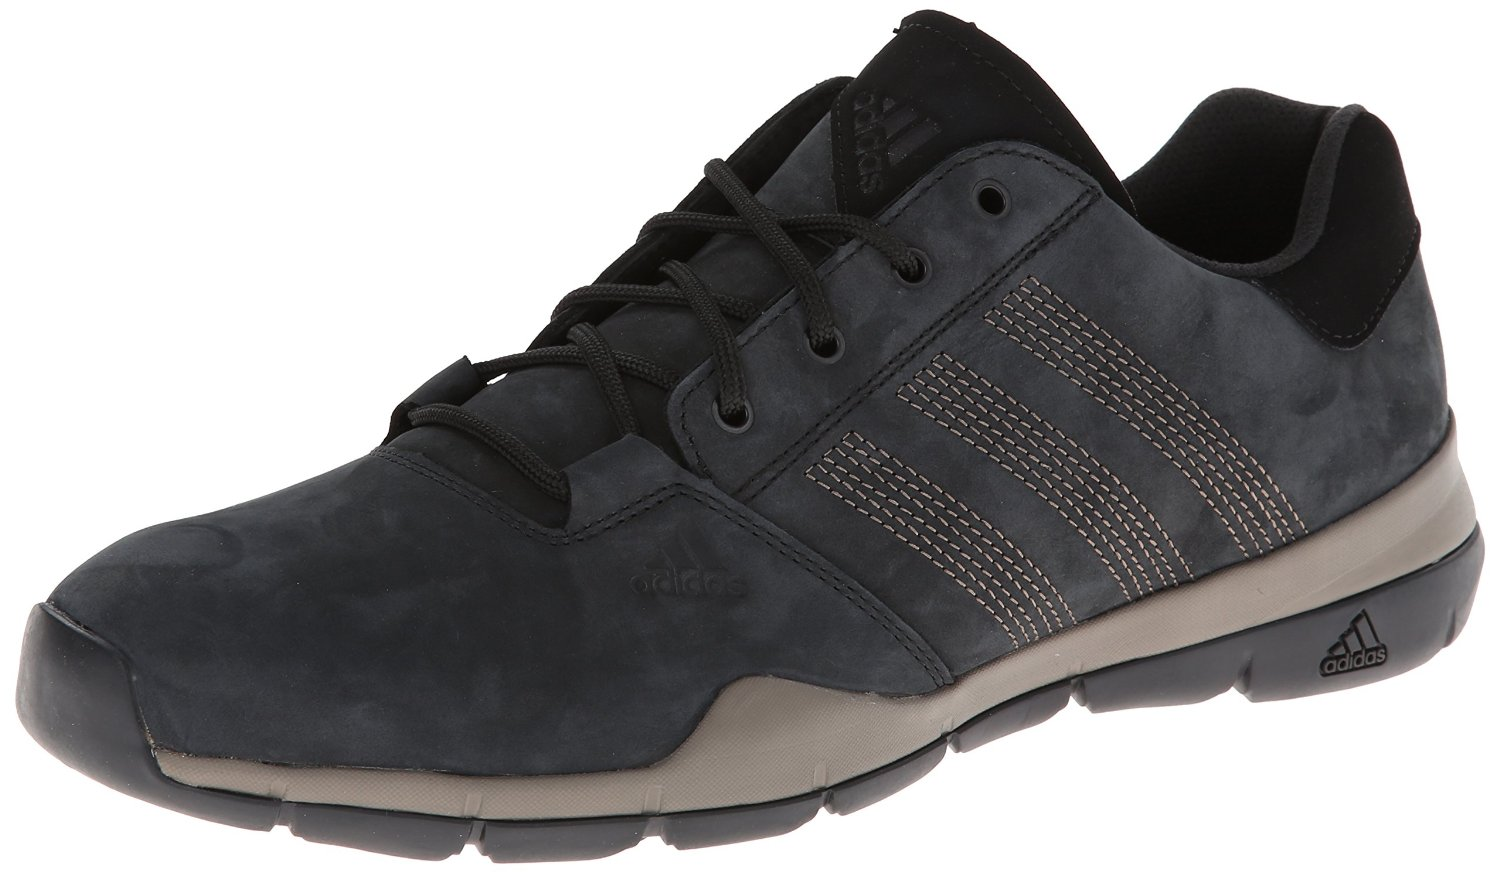 Image of Adidas - Mens Anzit Hiking Shoes